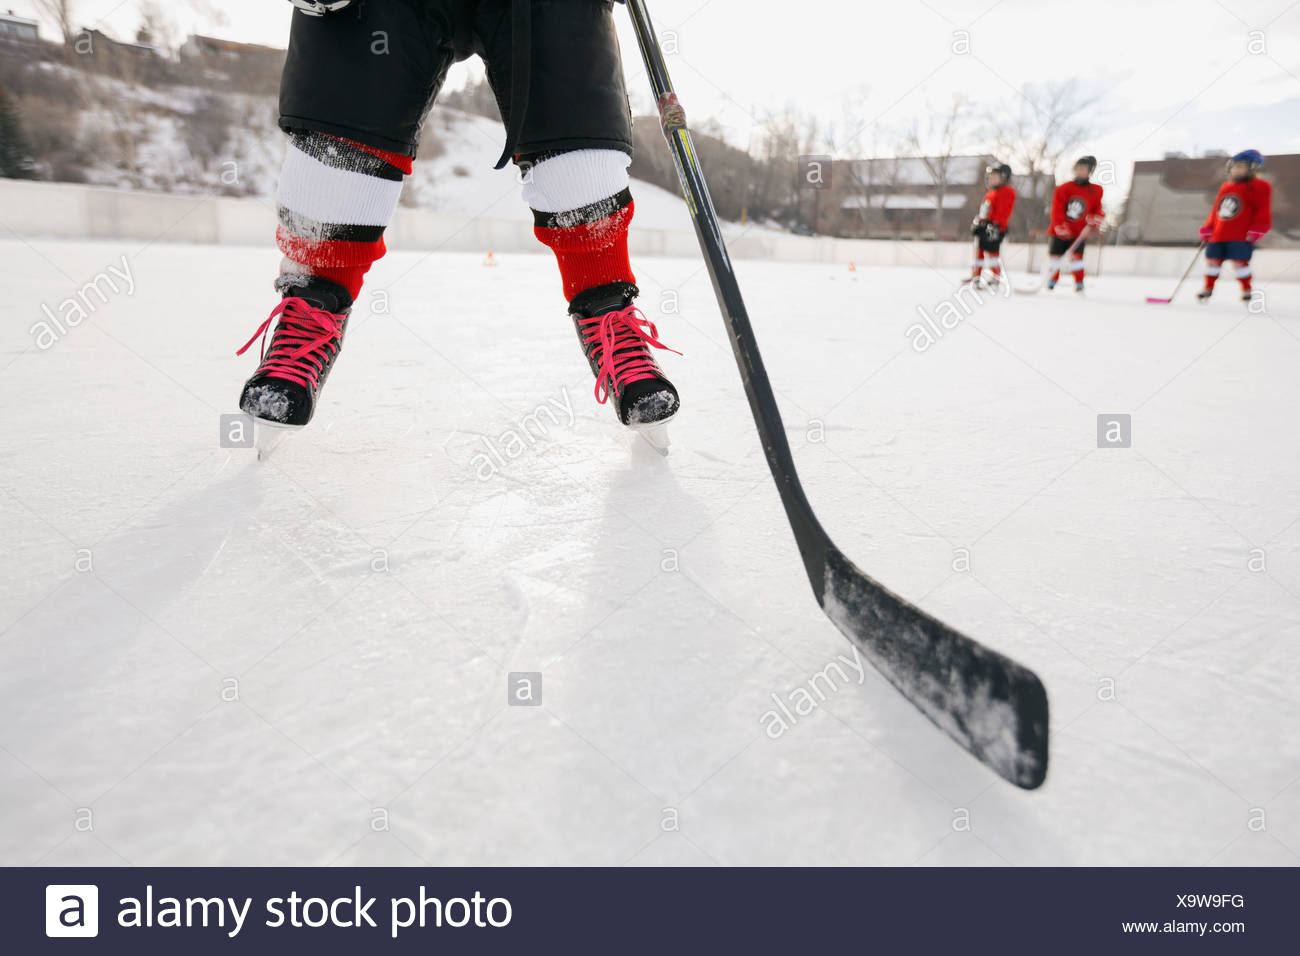 Low section of ice hockey player on rink - Stock Image